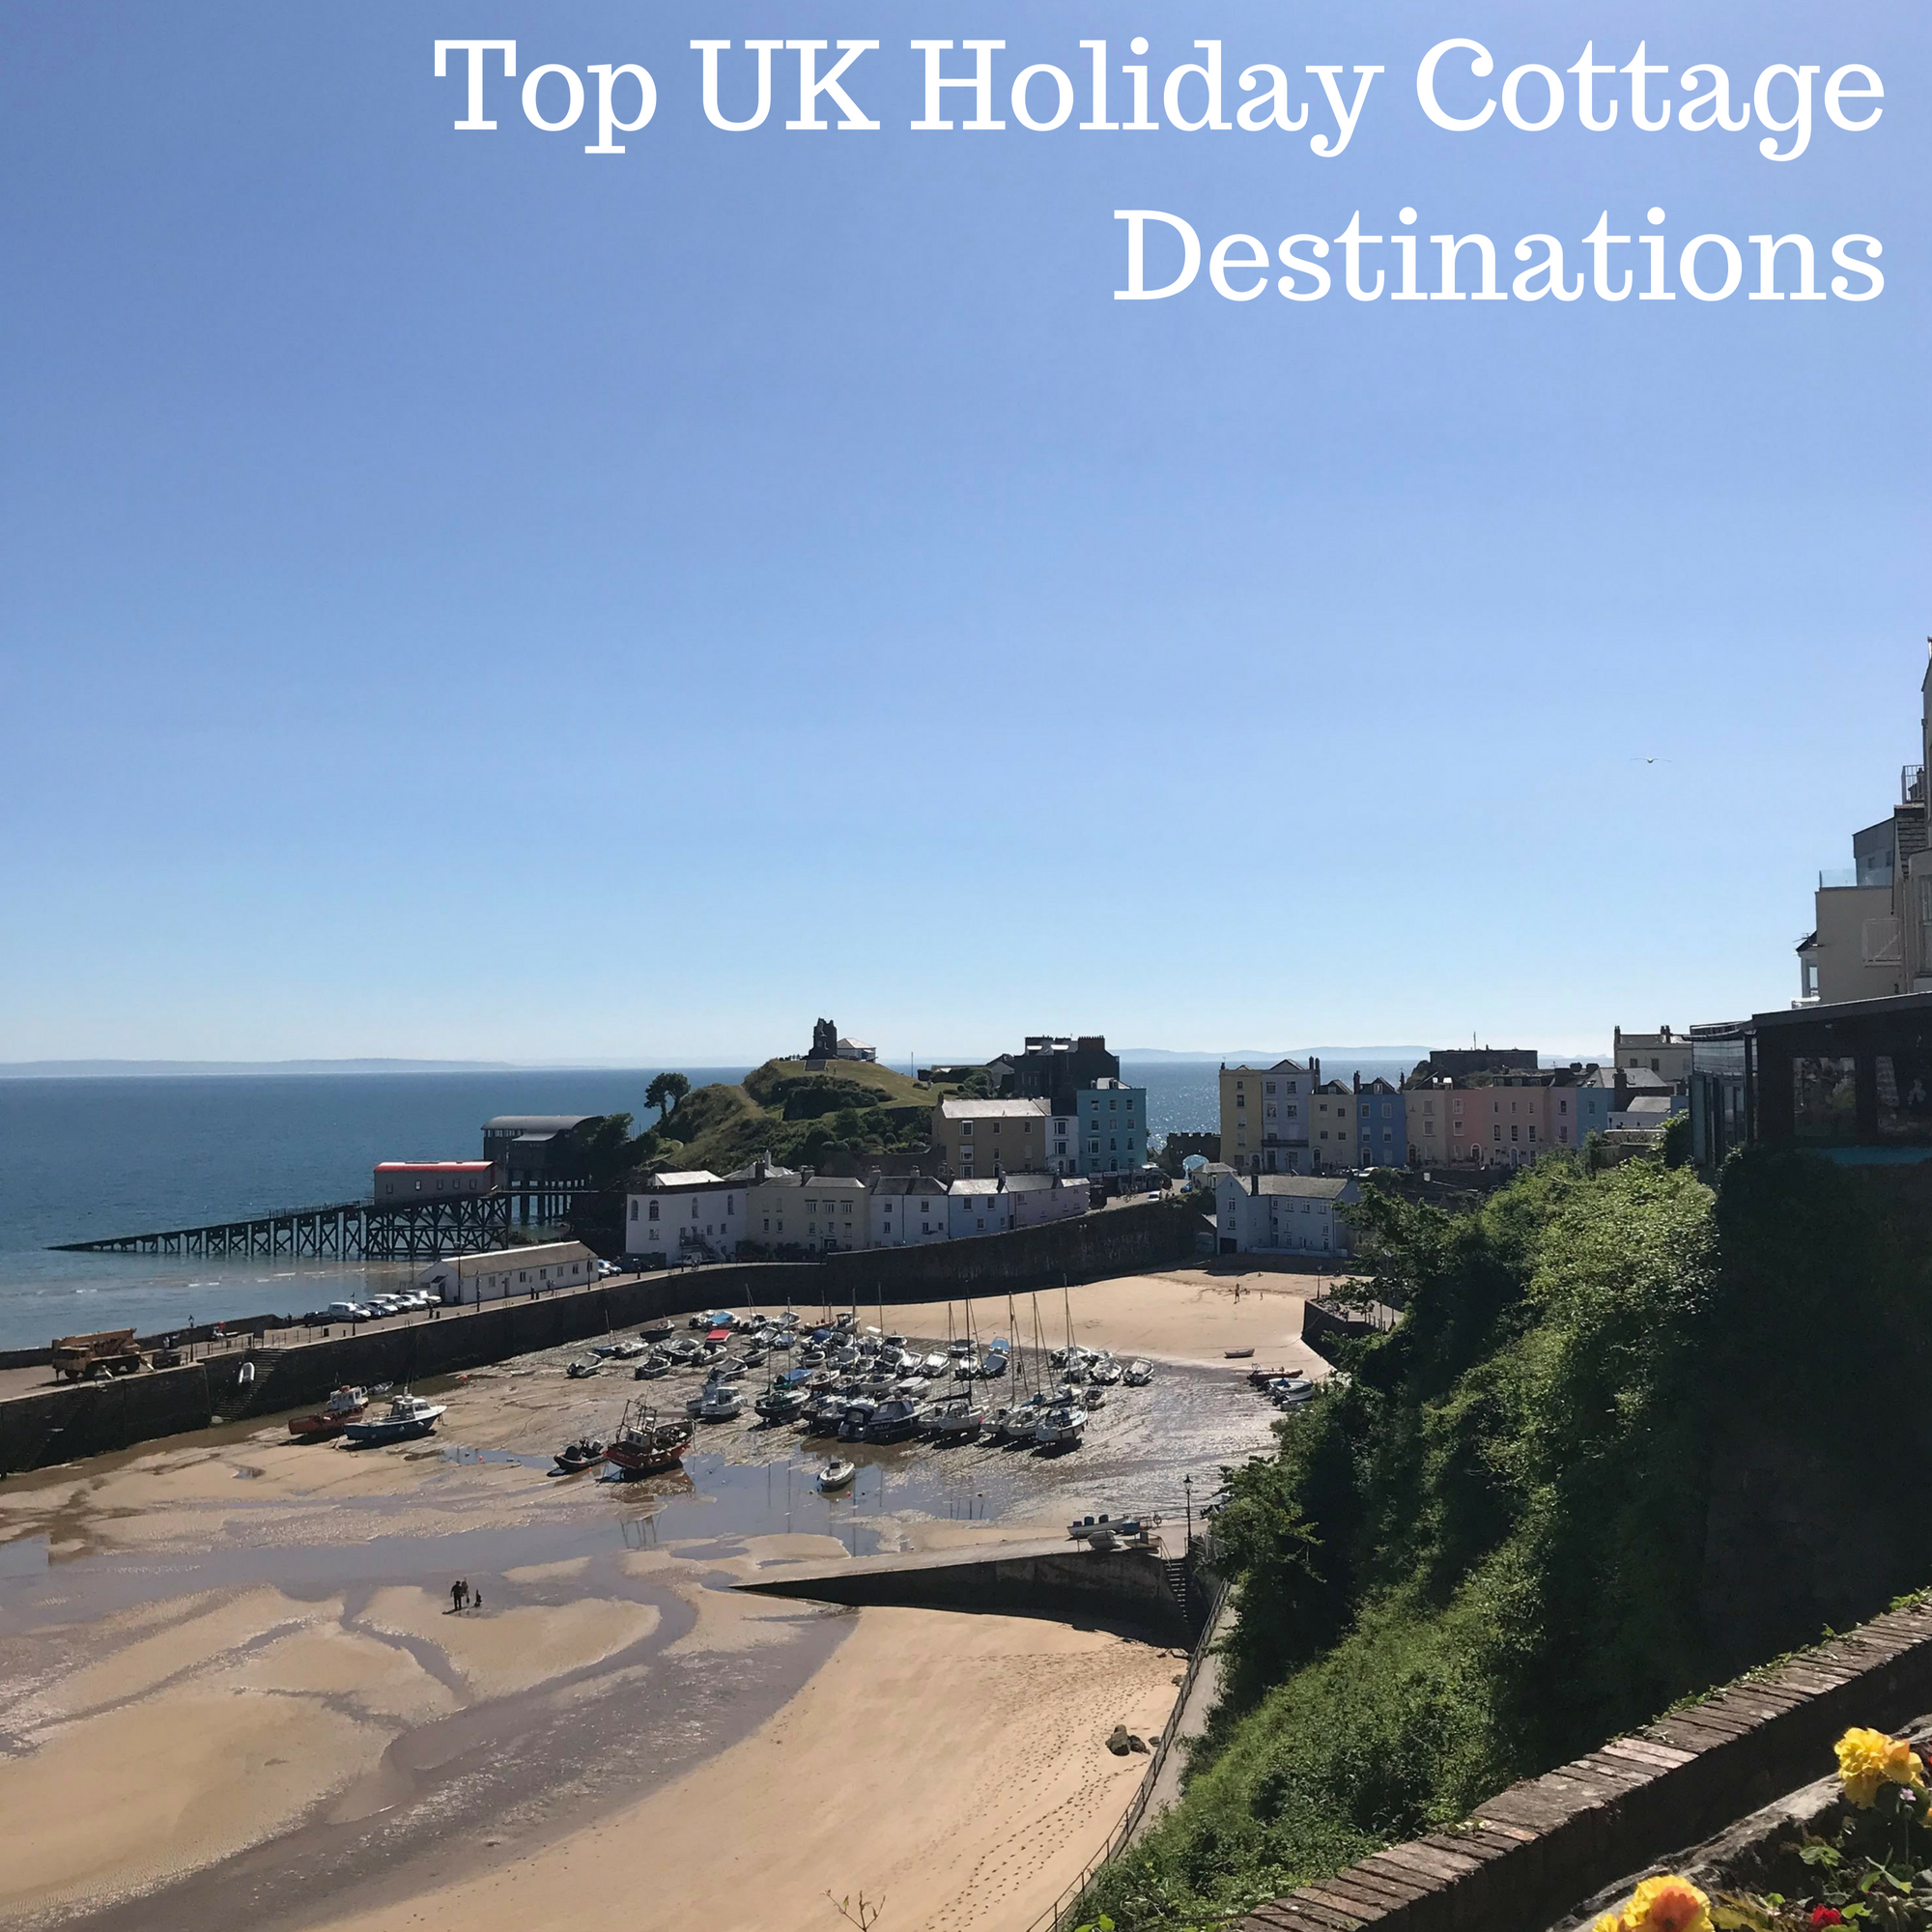 Top UK Holiday Cottage Destinations